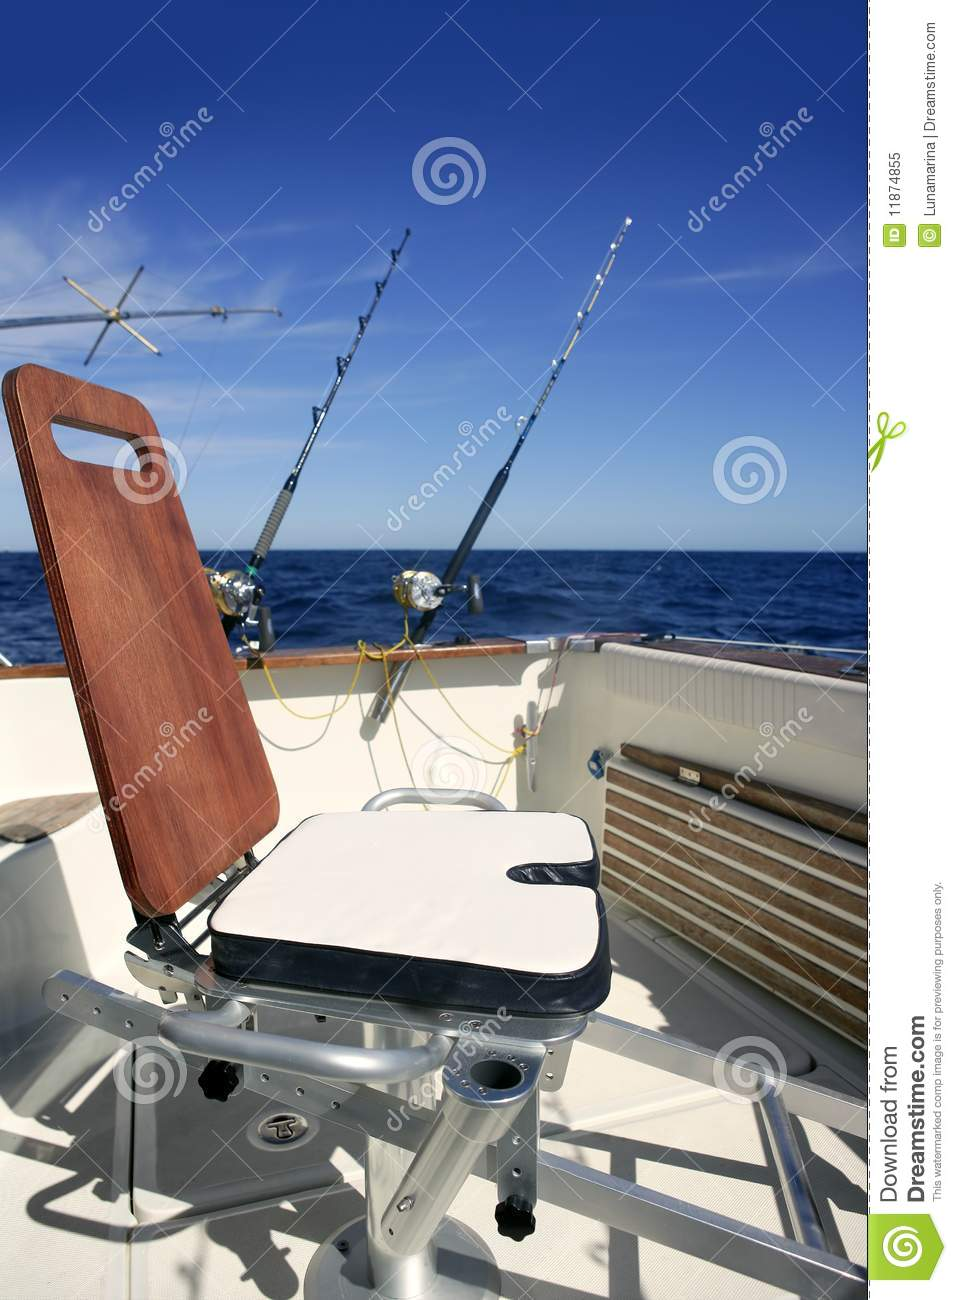 How to Choose the Best Chair for Your Fishing Boat